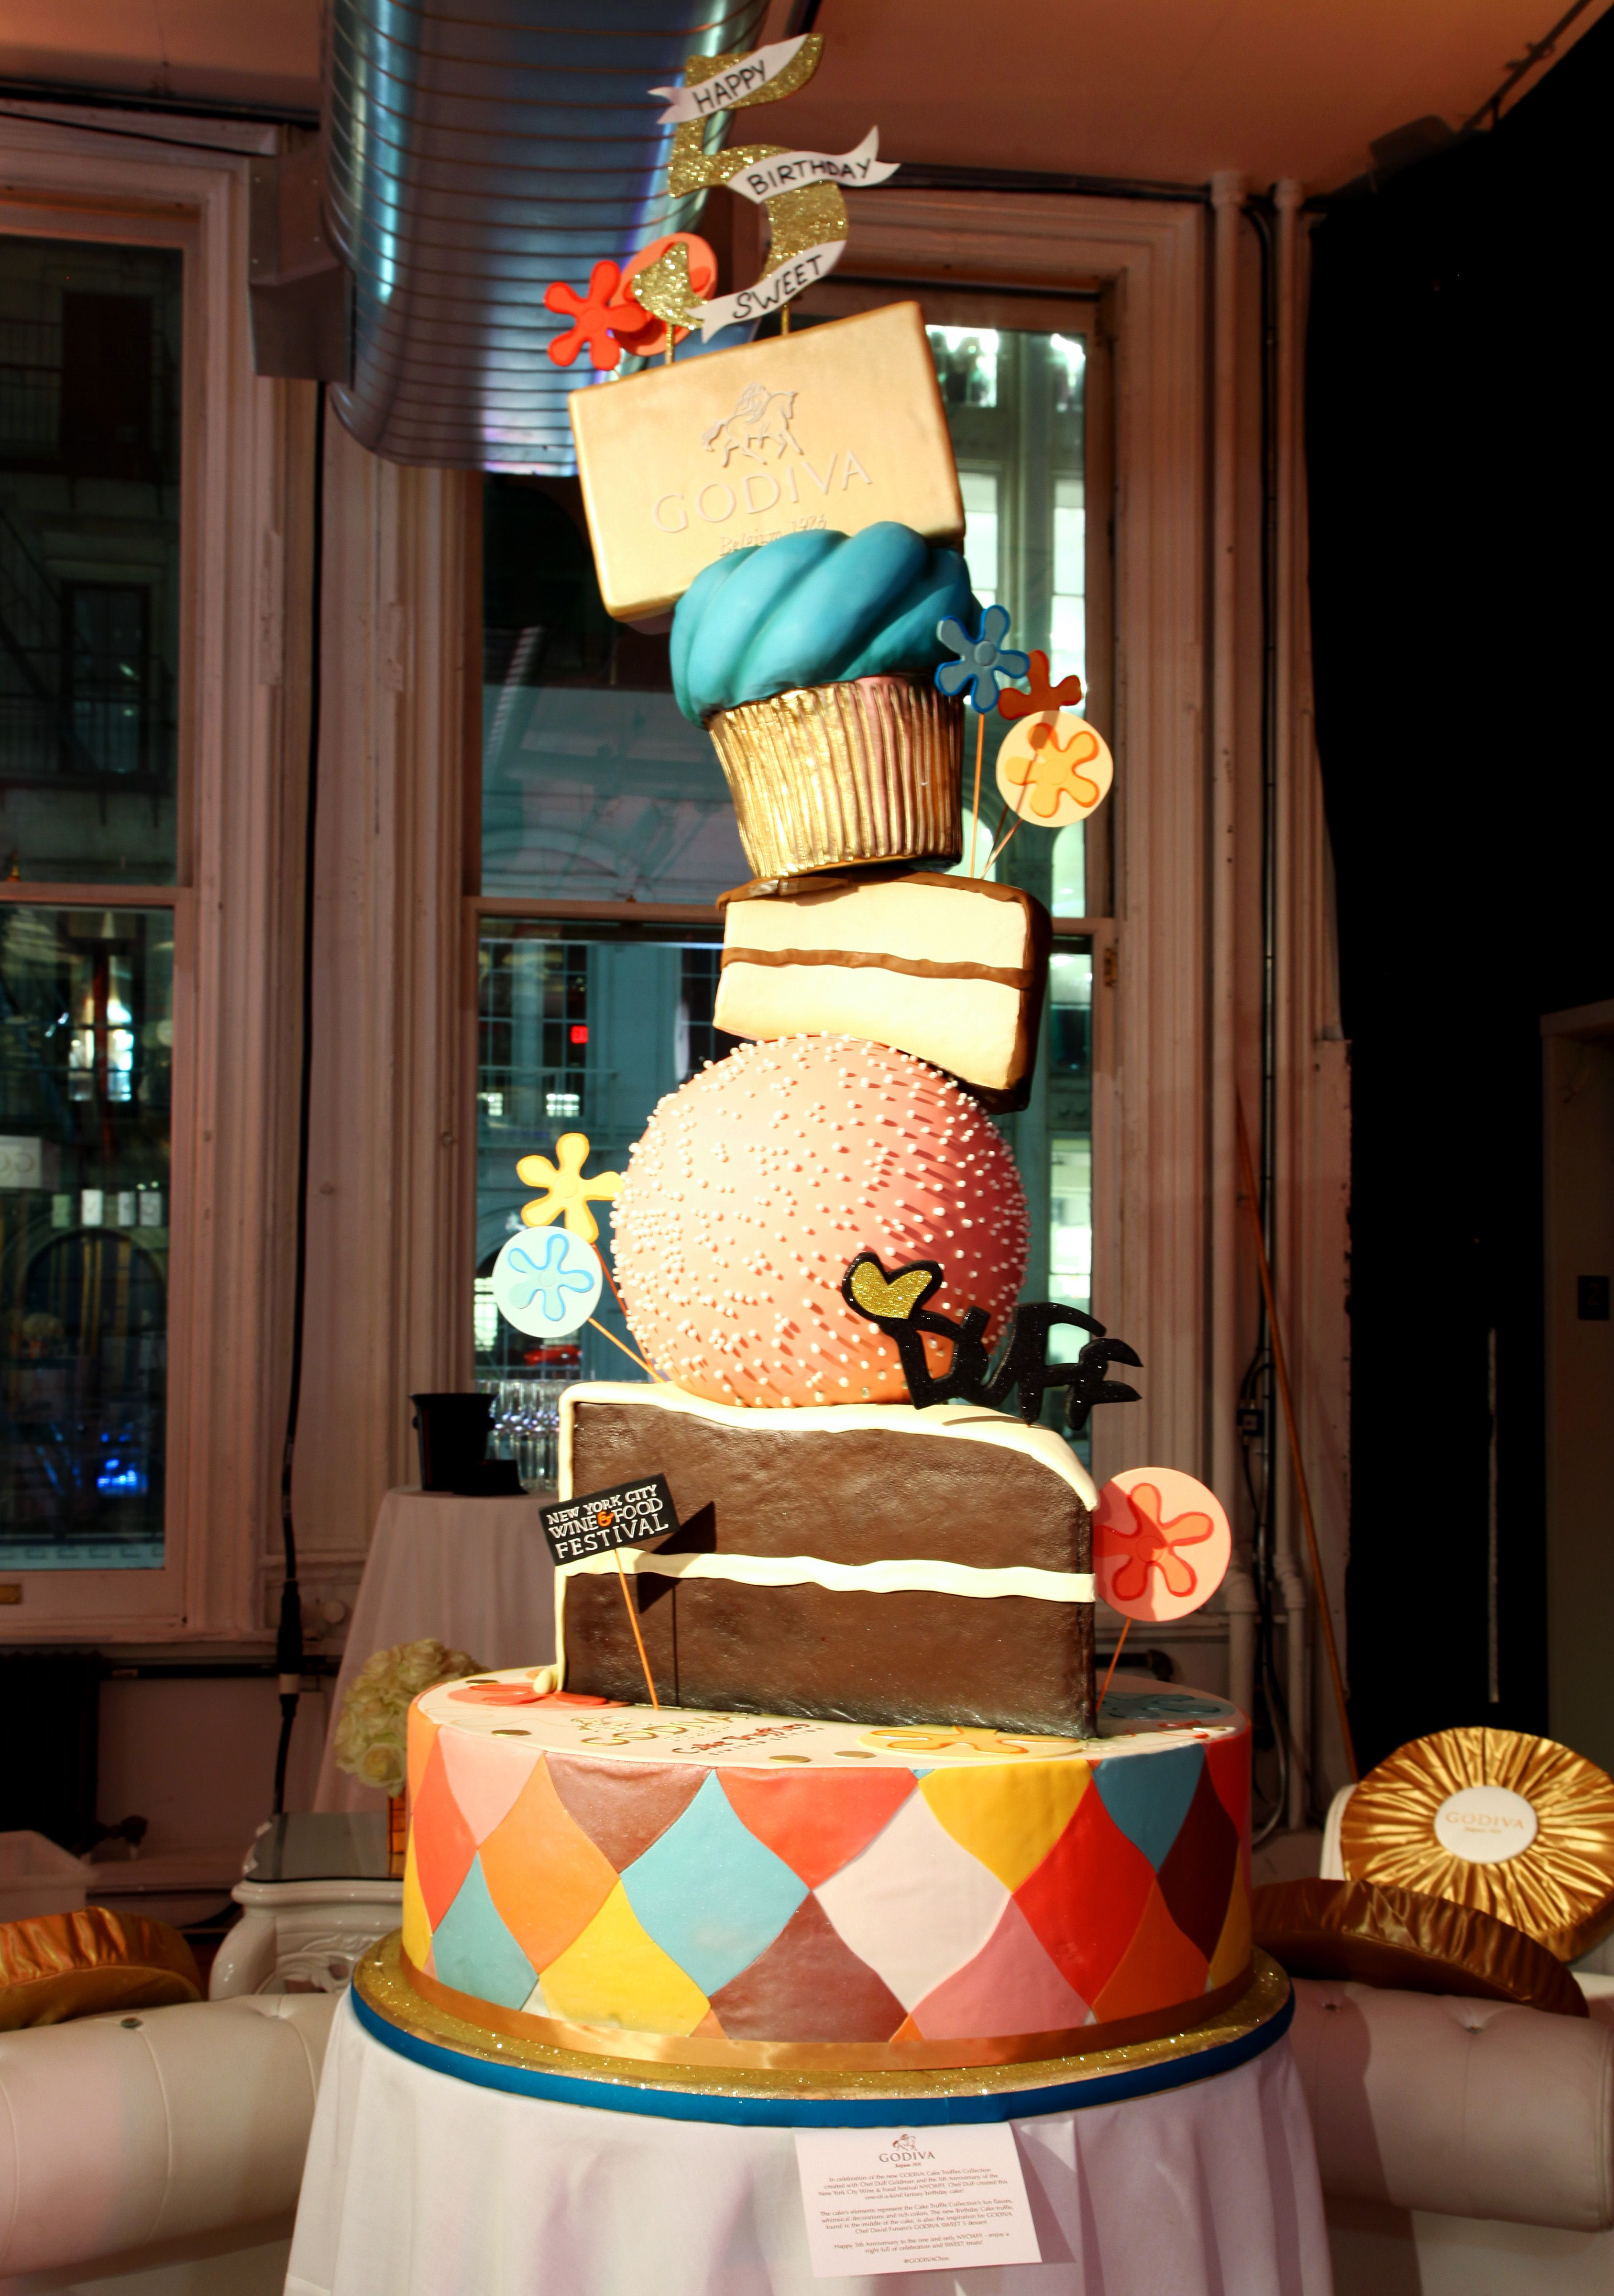 Chef Duff Goldman Created A Five Foot Cake For The Sweet 5th